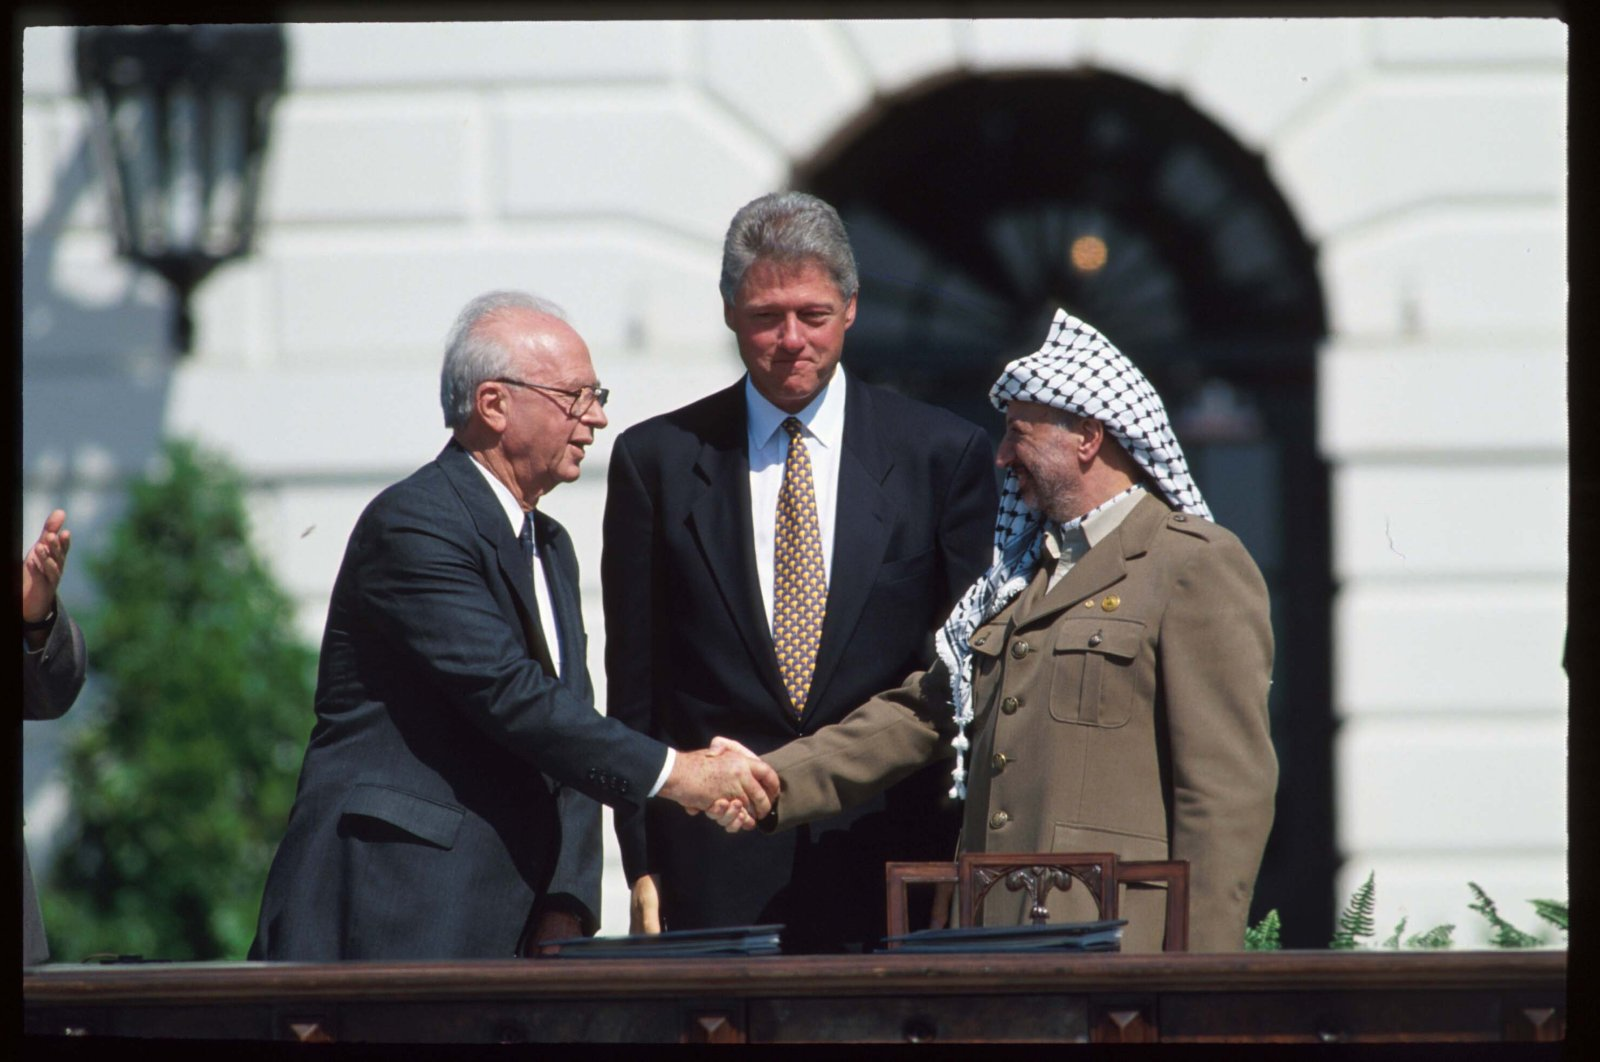 Palestine Liberation Organization (PLO) Chairperson Yasir Arafat (R) and Israeli Prime Minister Yitzhak Rabin (L) shake hands after the signing of the Oslo Accords in front of U.S. President Bill Clinton, Washington, D.C., U.S., Sept. 13, 1993. (Photo by Getty Images)